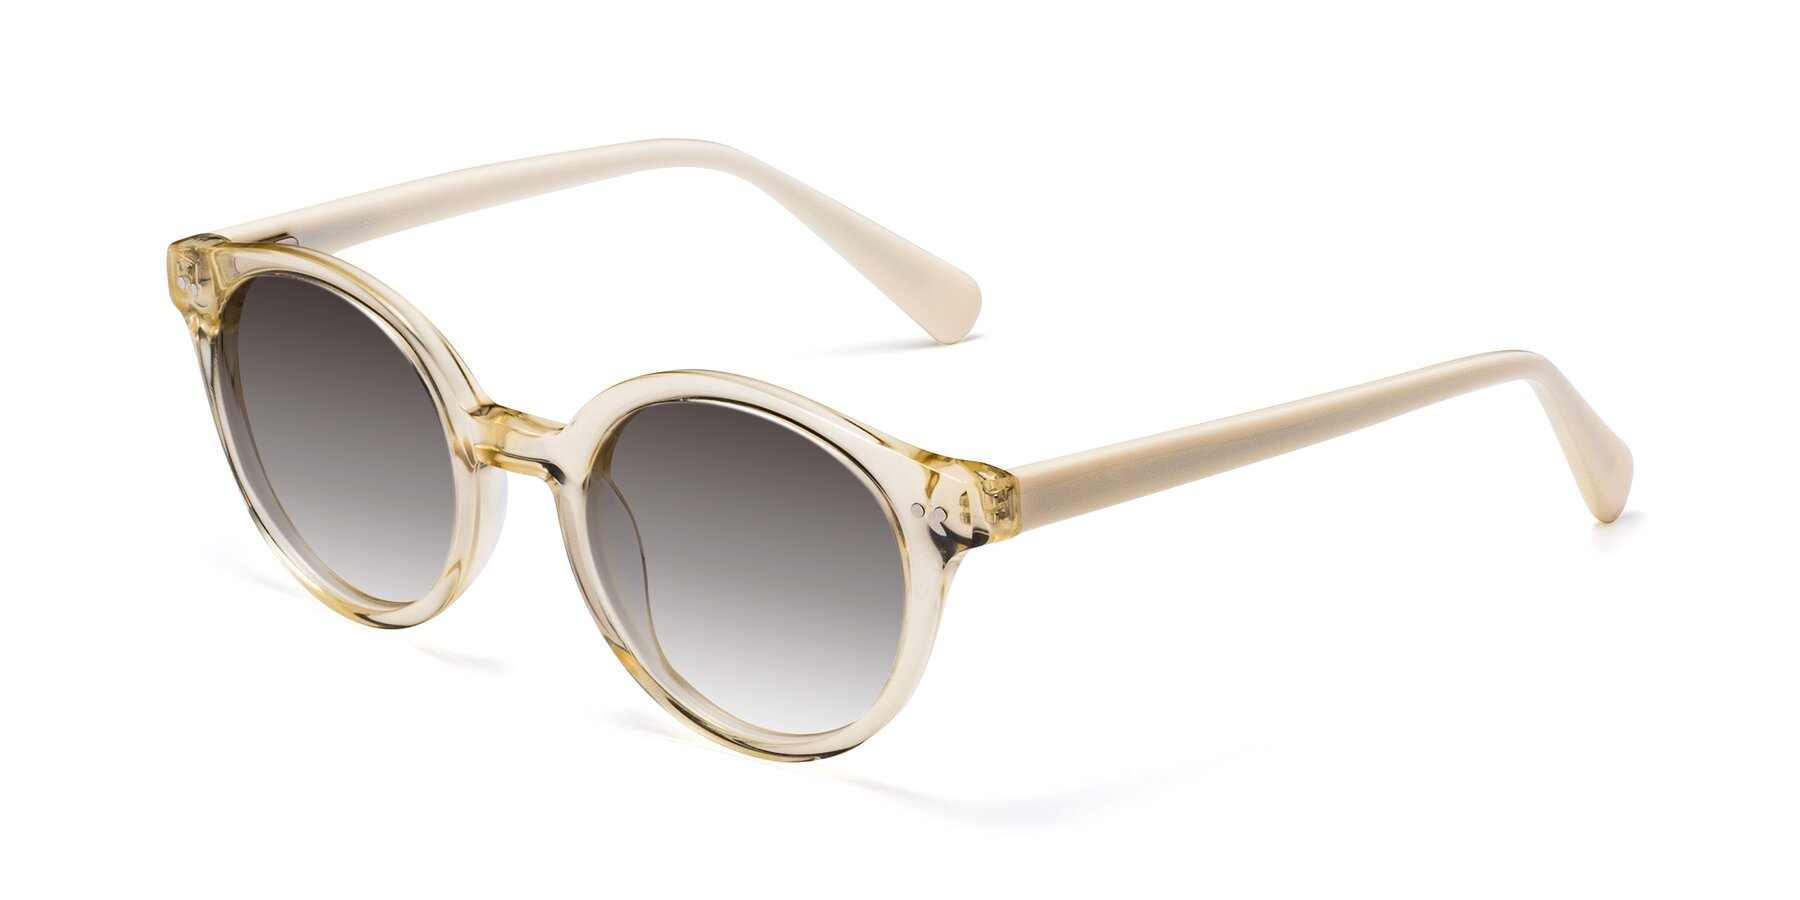 Angle of 17277 in Transparent Beige with Gray Gradient Lenses